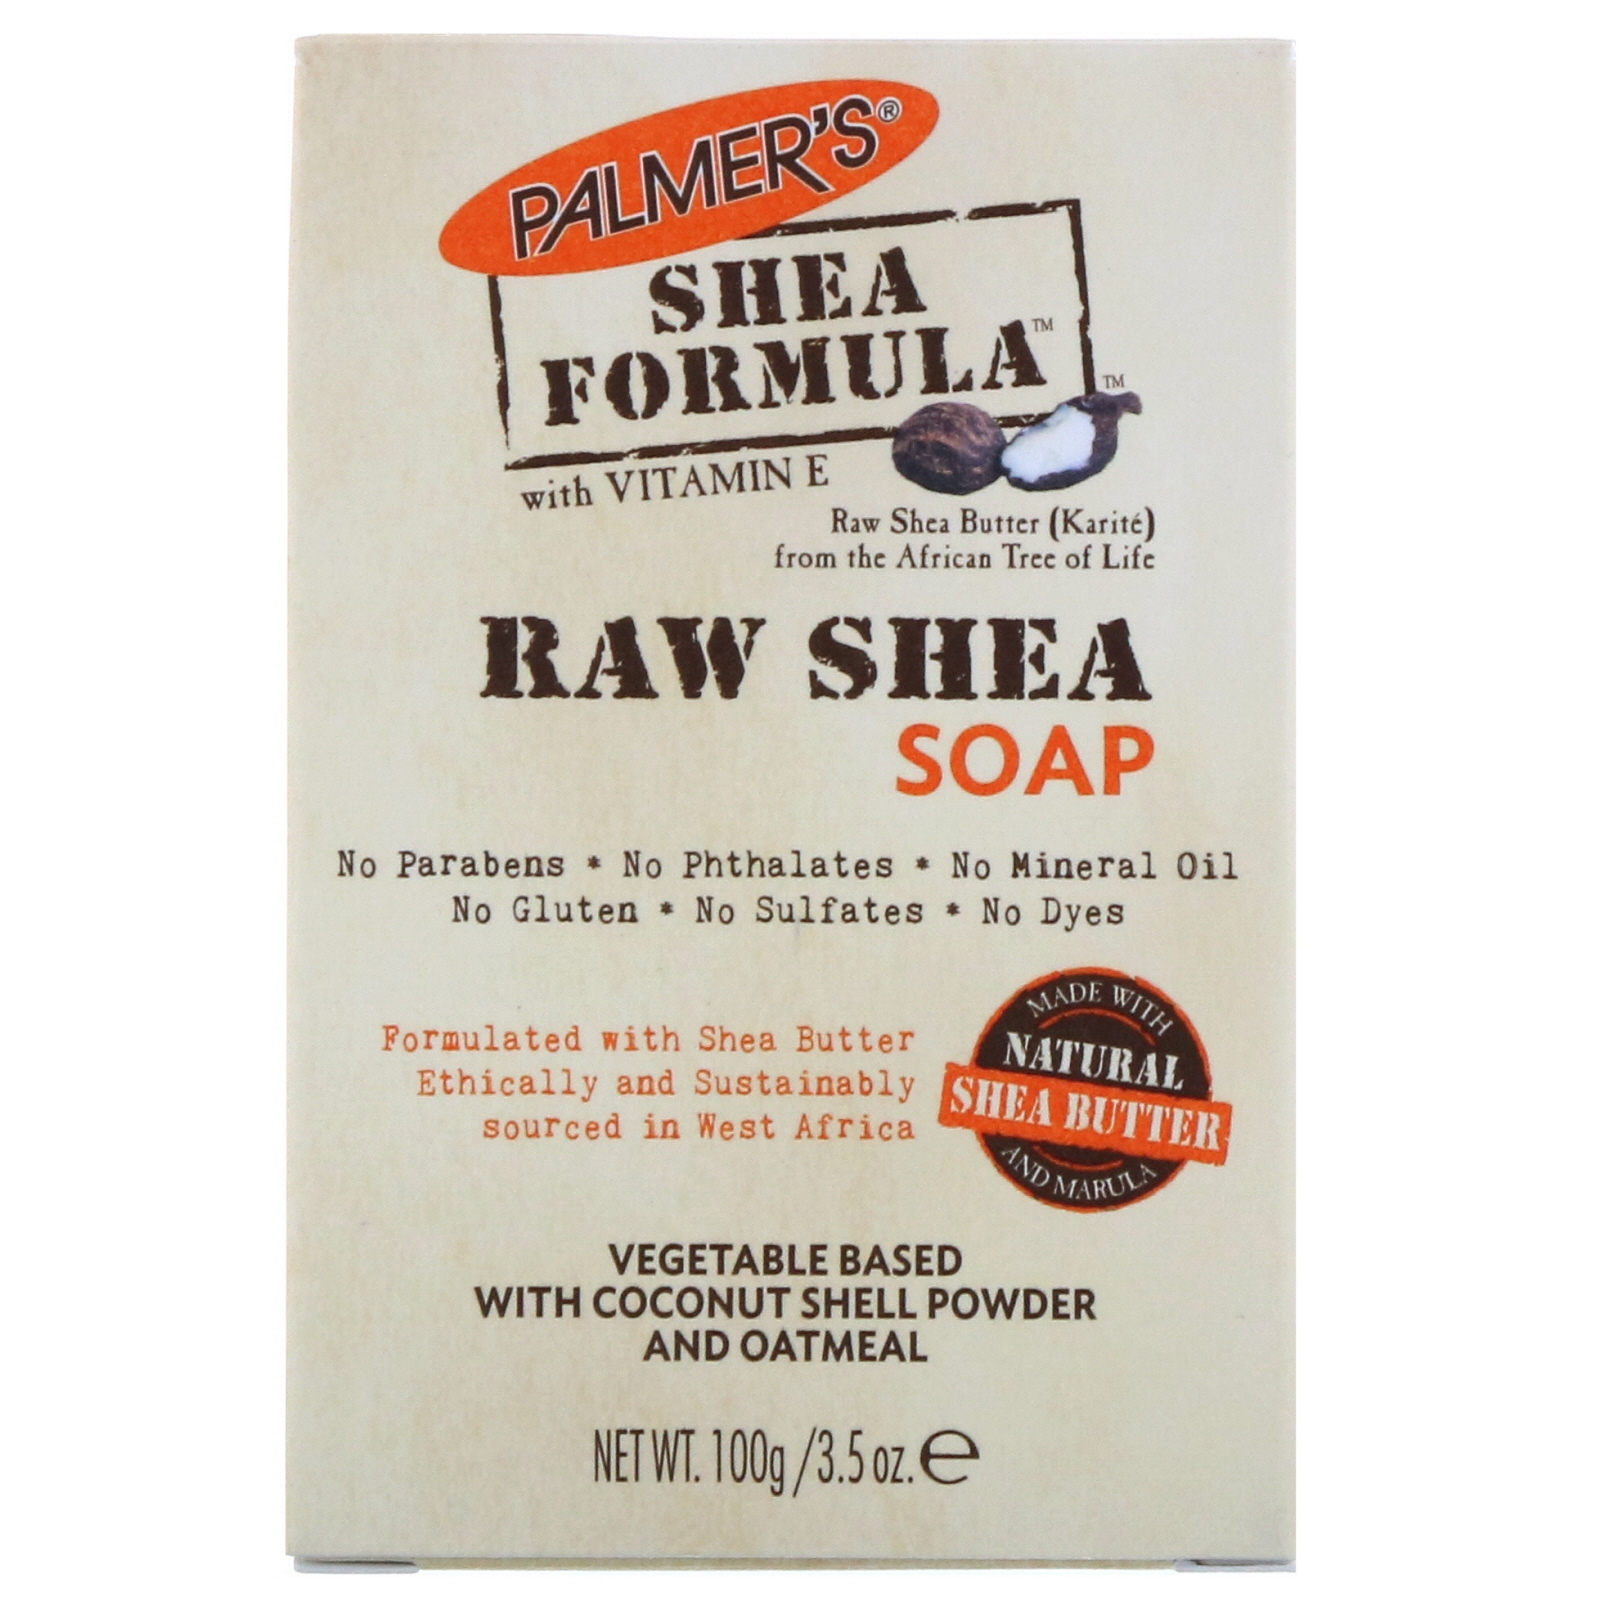 Palmer's, Shea Formula, Raw Shea Soap, with Vitamin E, 3 5 oz (100 g